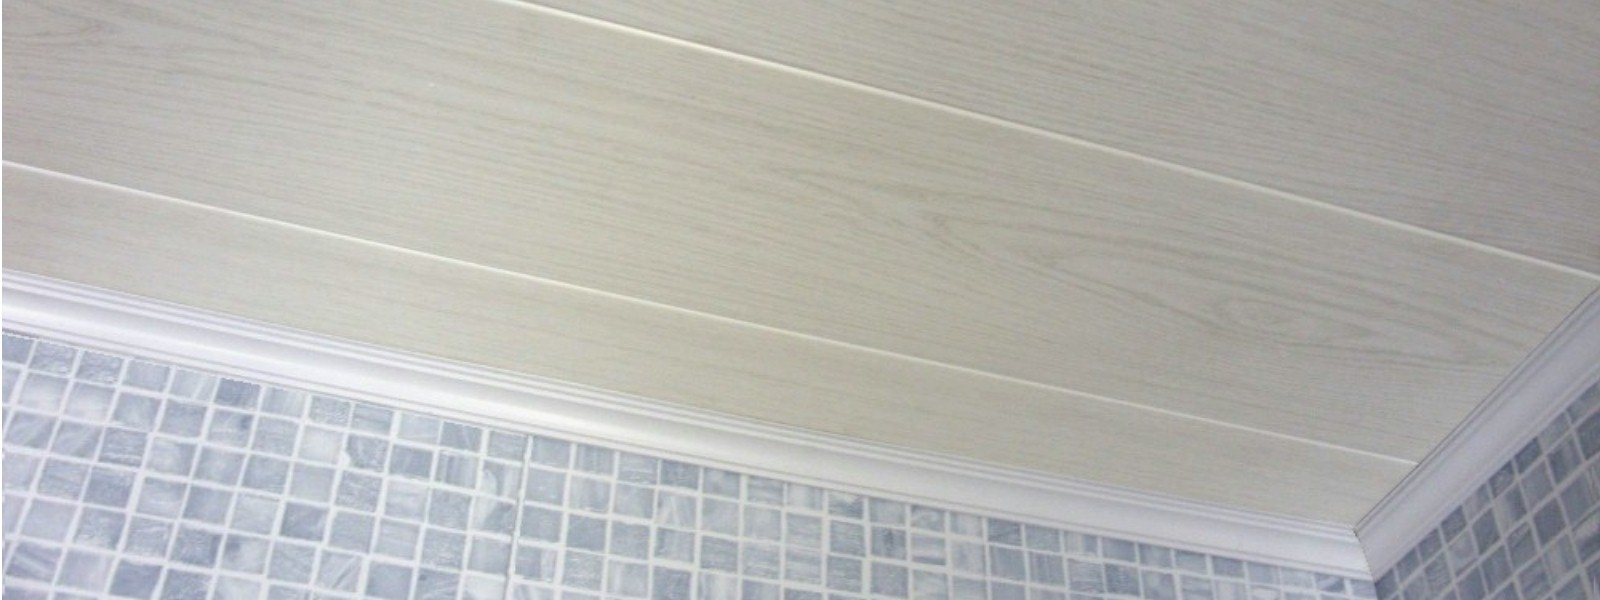 Ceiling panel coving trim the bathroom marquee for Coving for bathroom ceilings